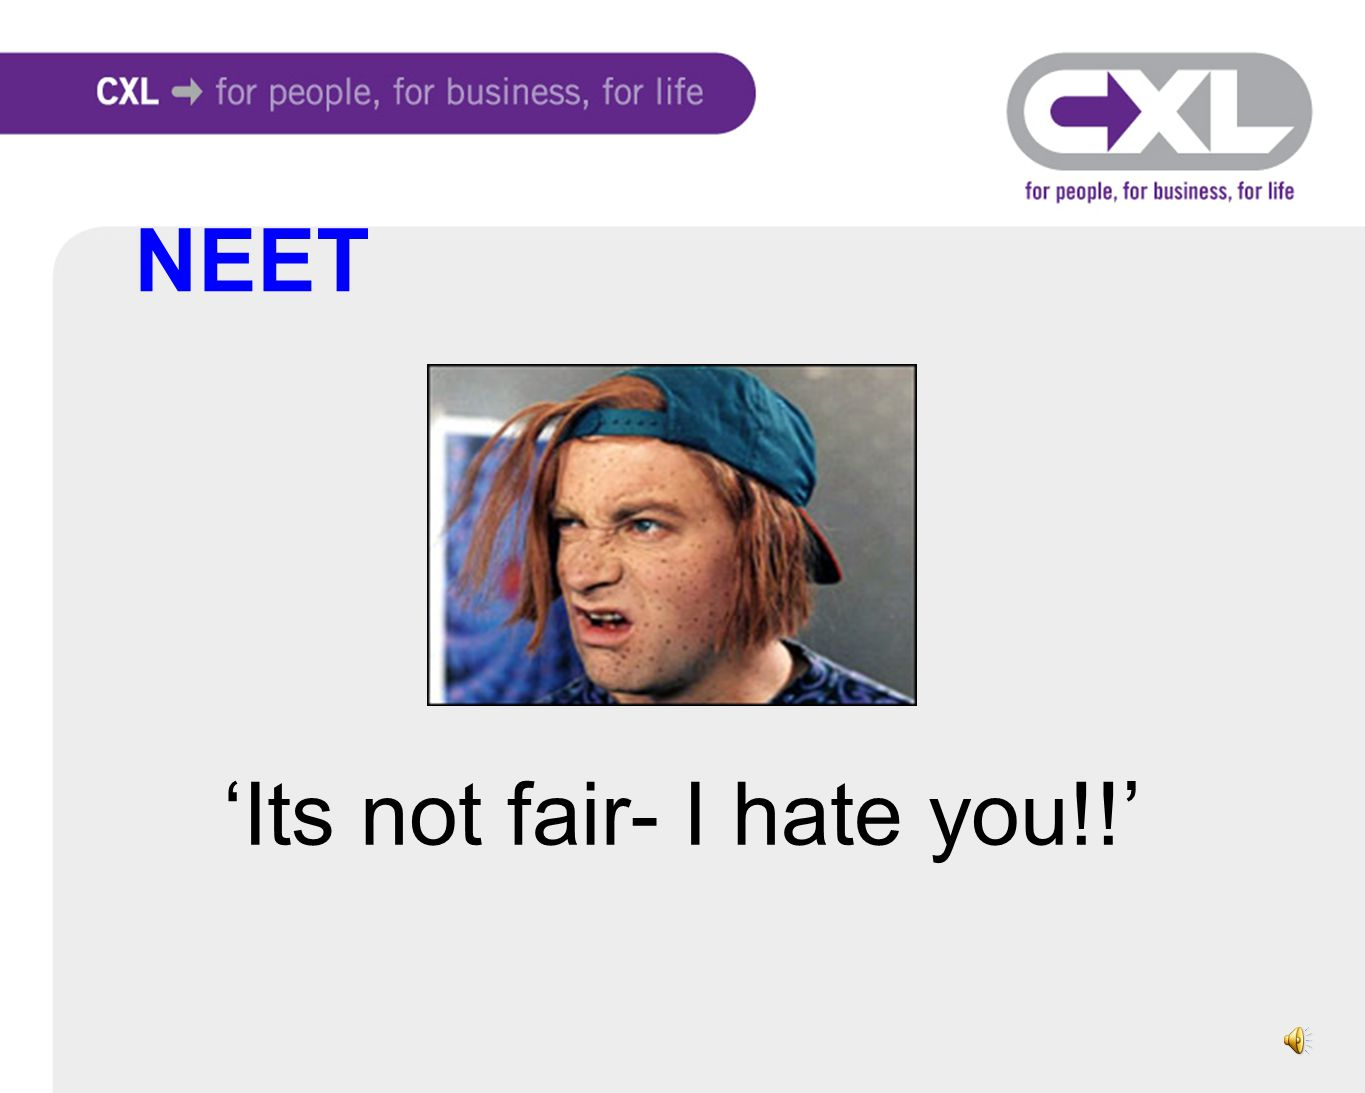 'Its not fair- I hate you!!' NEET